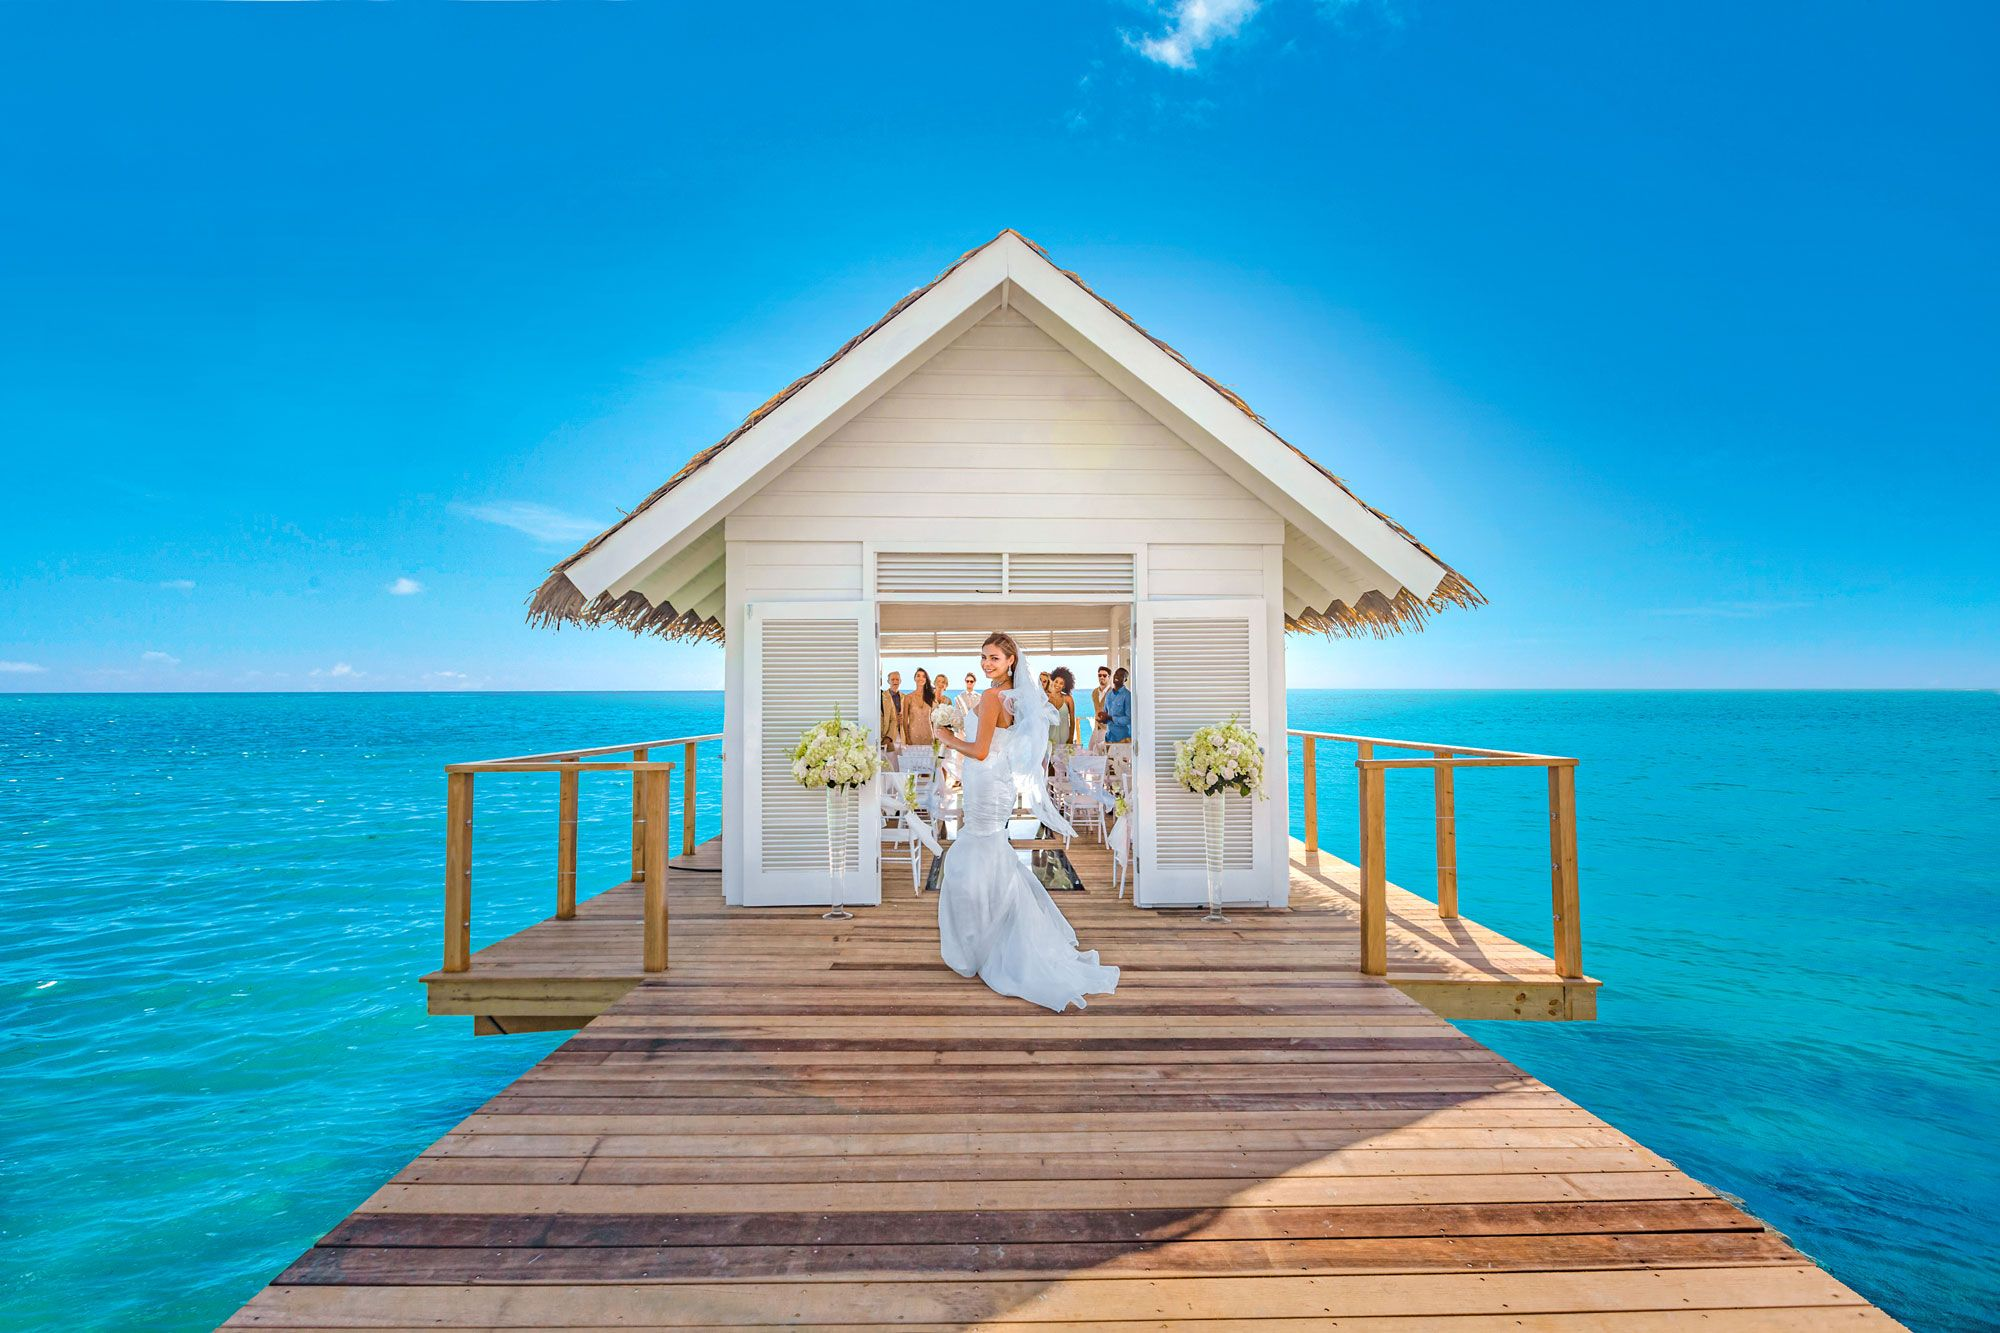 Sandals South Coast Over Water Chapel Bride